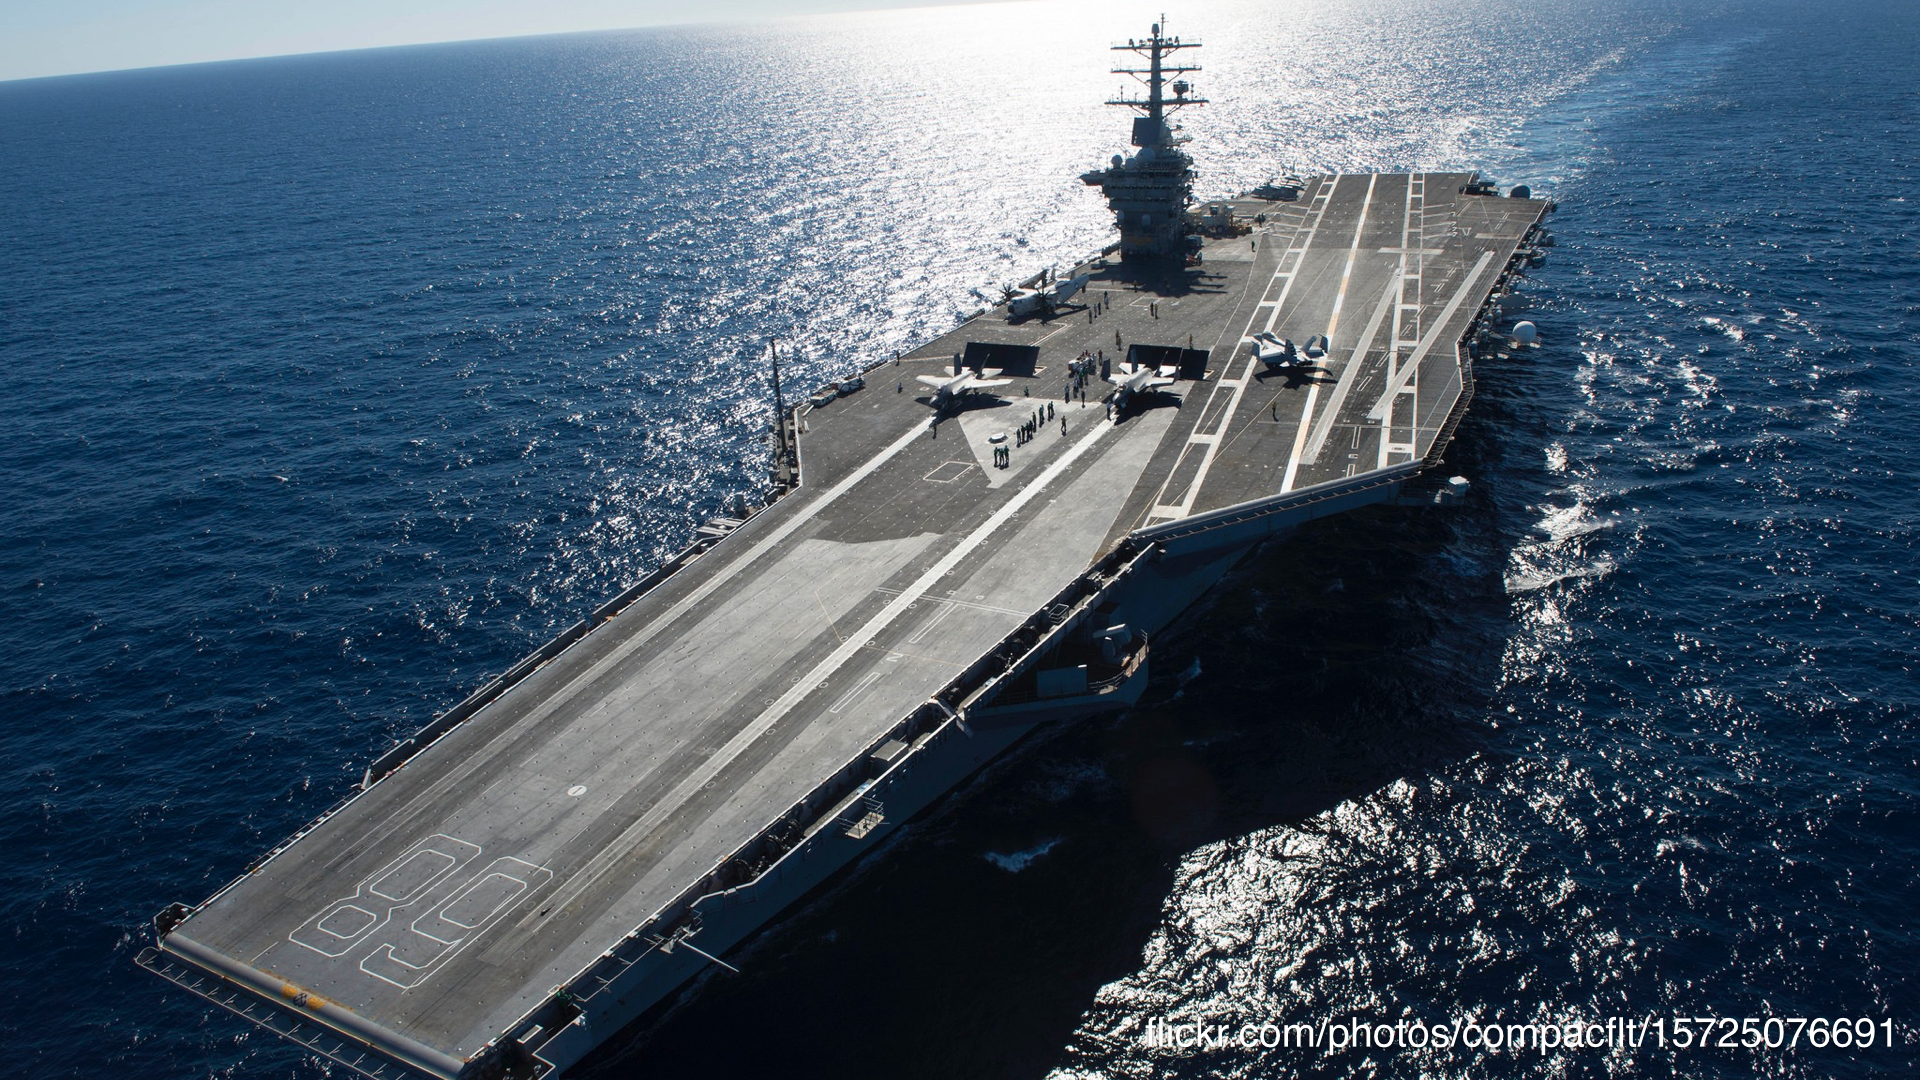 A photo of an aircraft carrier.